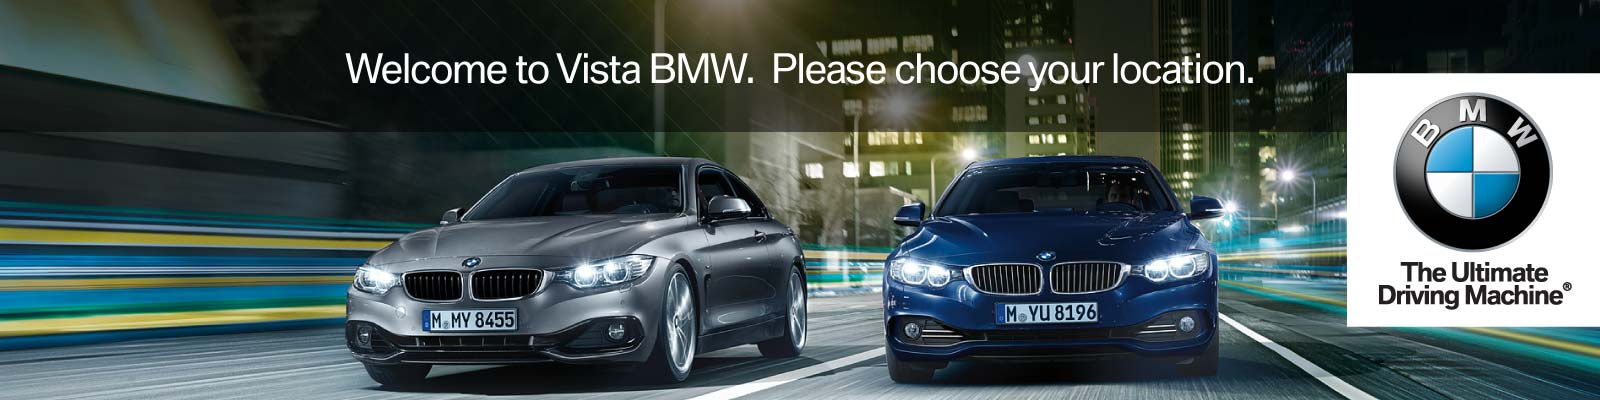 vista bmw coconut creek bmw for sale bmw lease used cars. Cars Review. Best American Auto & Cars Review